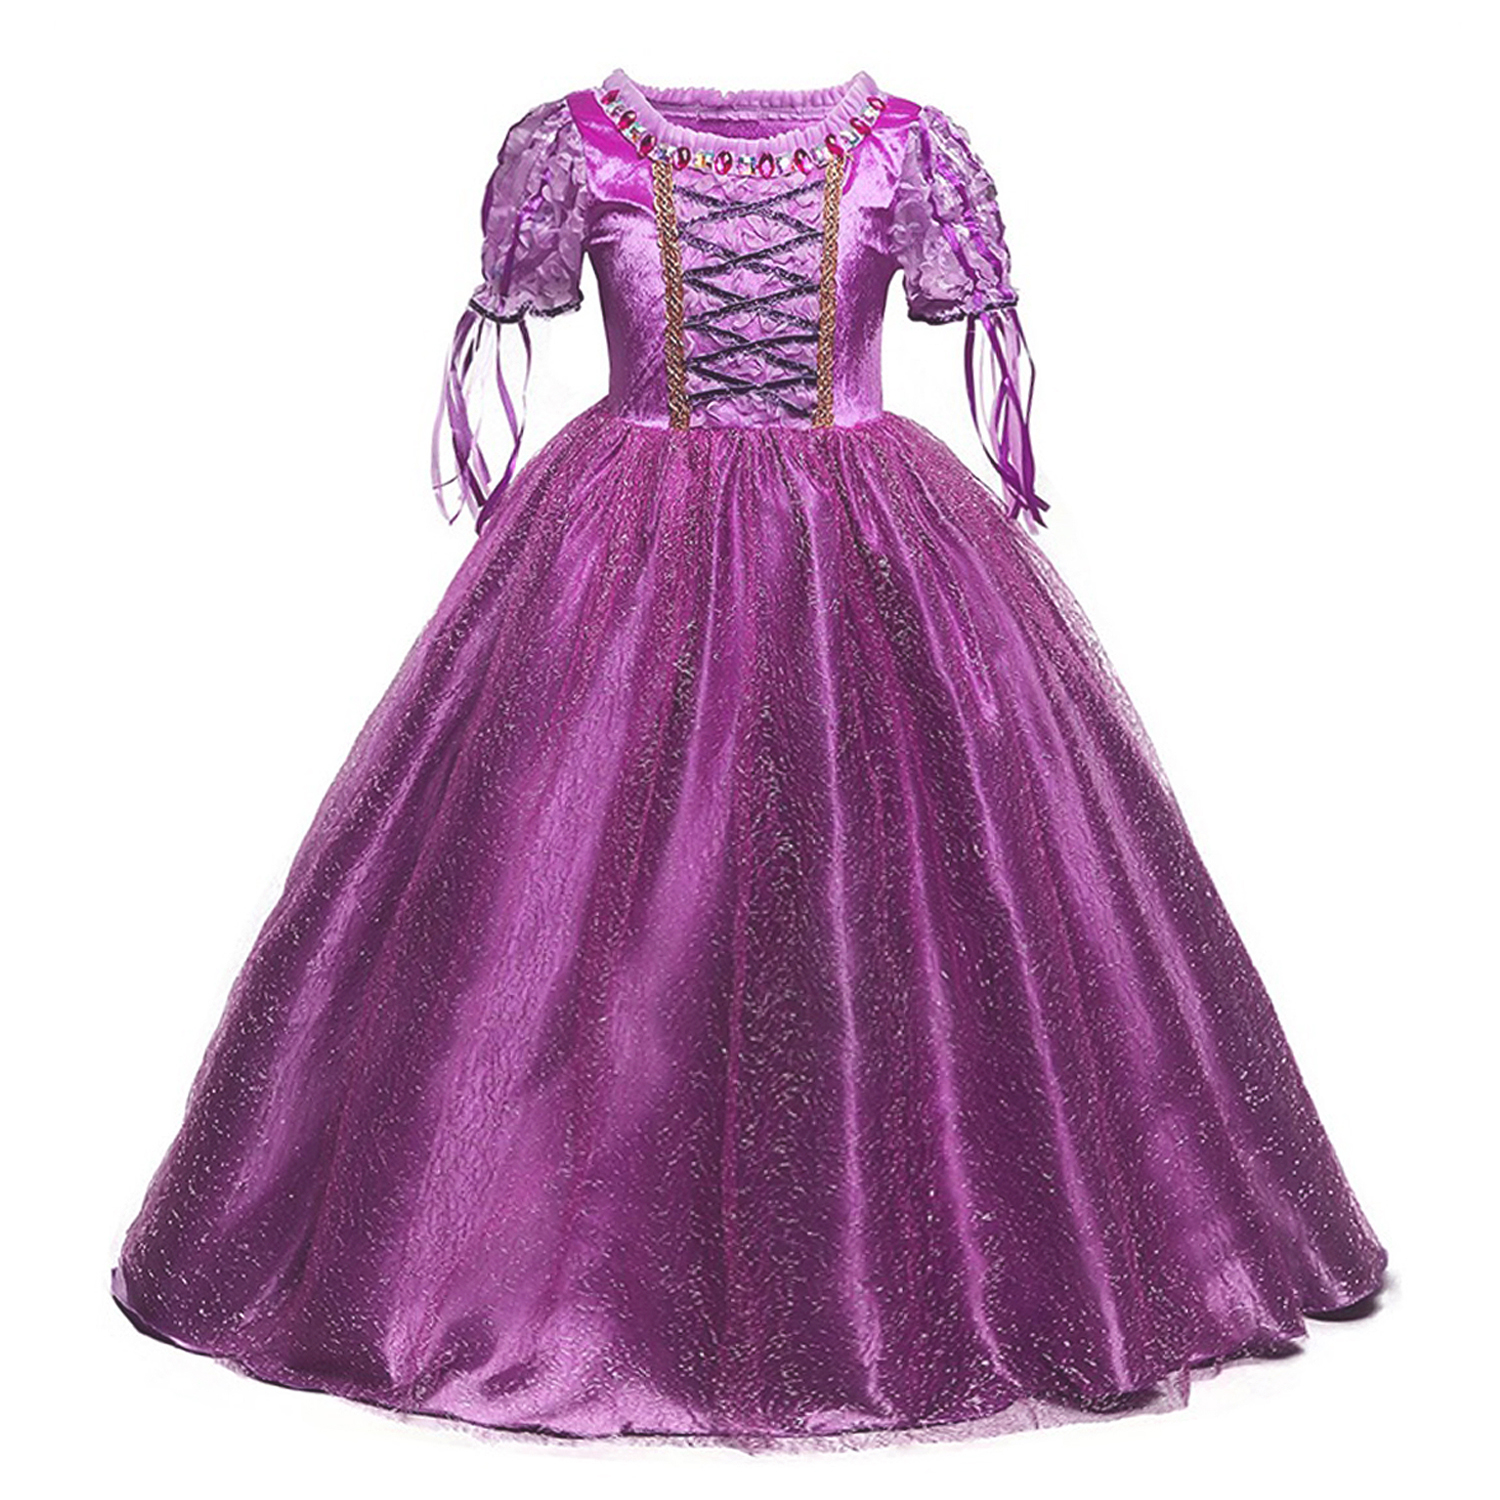 4 10 Years Girls Princess Party Girl Dress Kids Cosplay Dress Up Halloween Costumes For Kids Fancy Party Dress 5